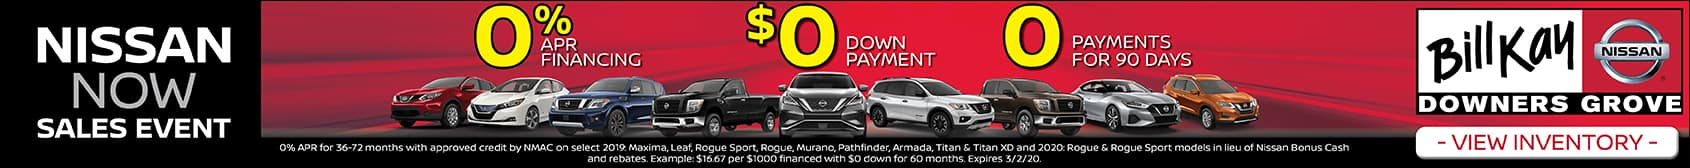 0% APR $0 Down 0 Payment for 90 Days